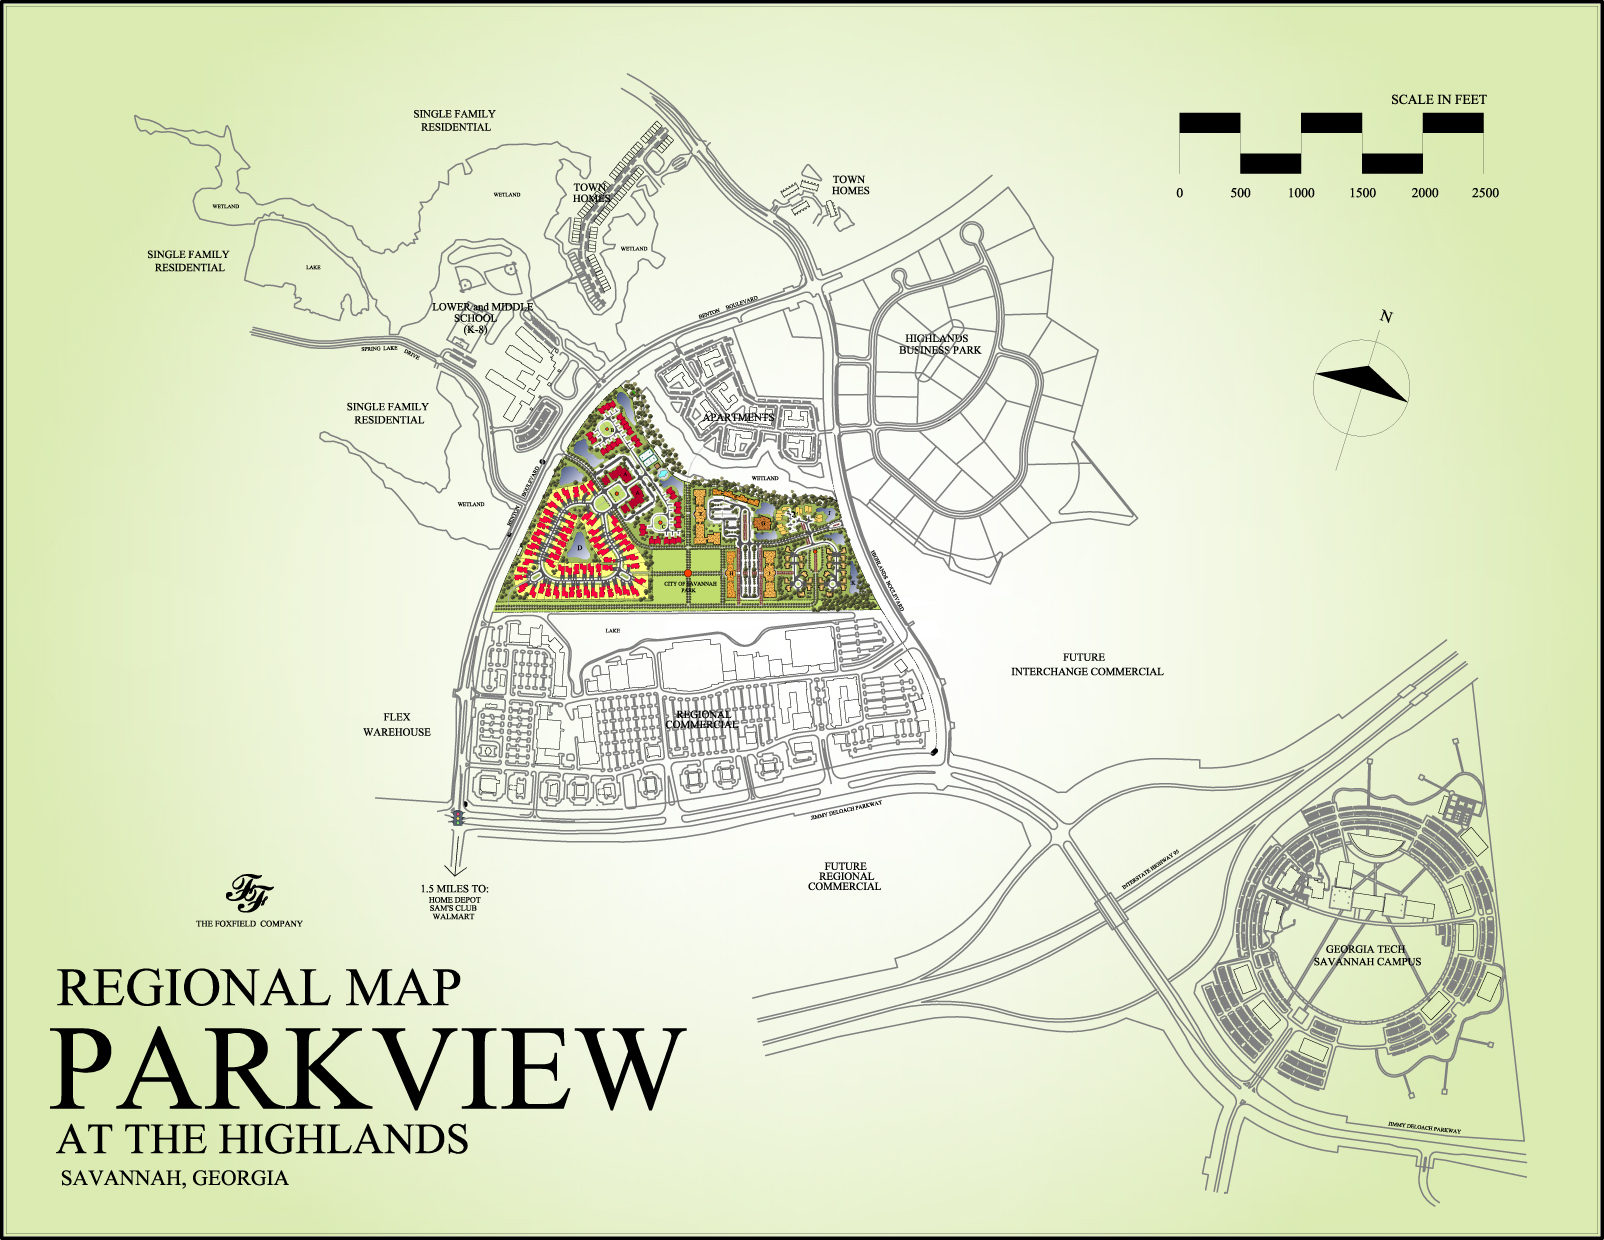 Regional Map, Parkview at The Highlands, Savannah, Georgia